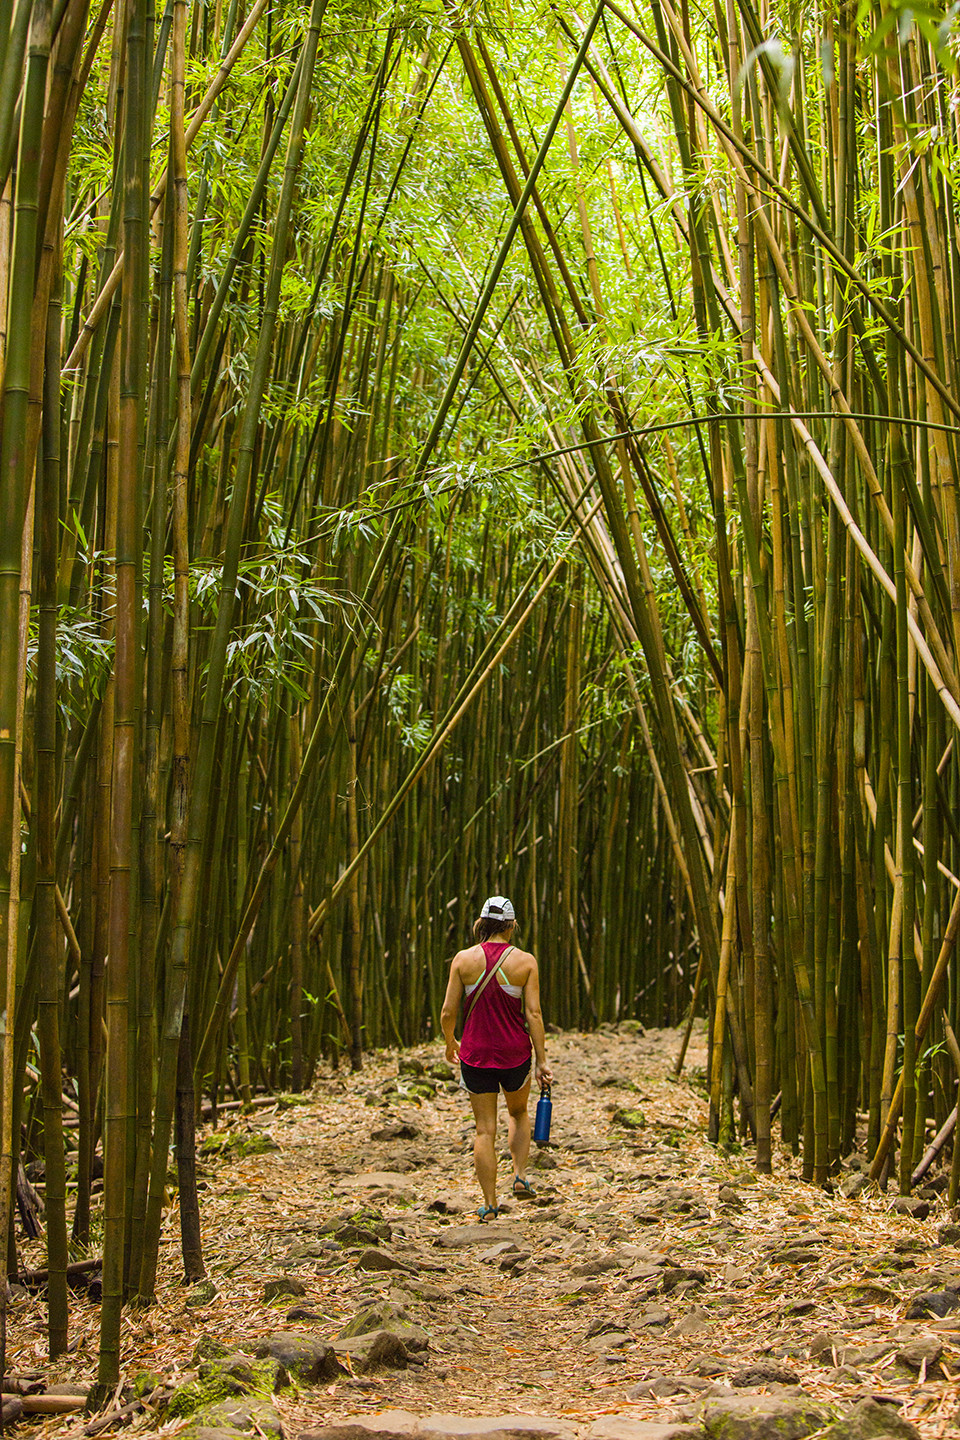 Hiker walking through the bamboo forest in Haleakala National Park in Maui.